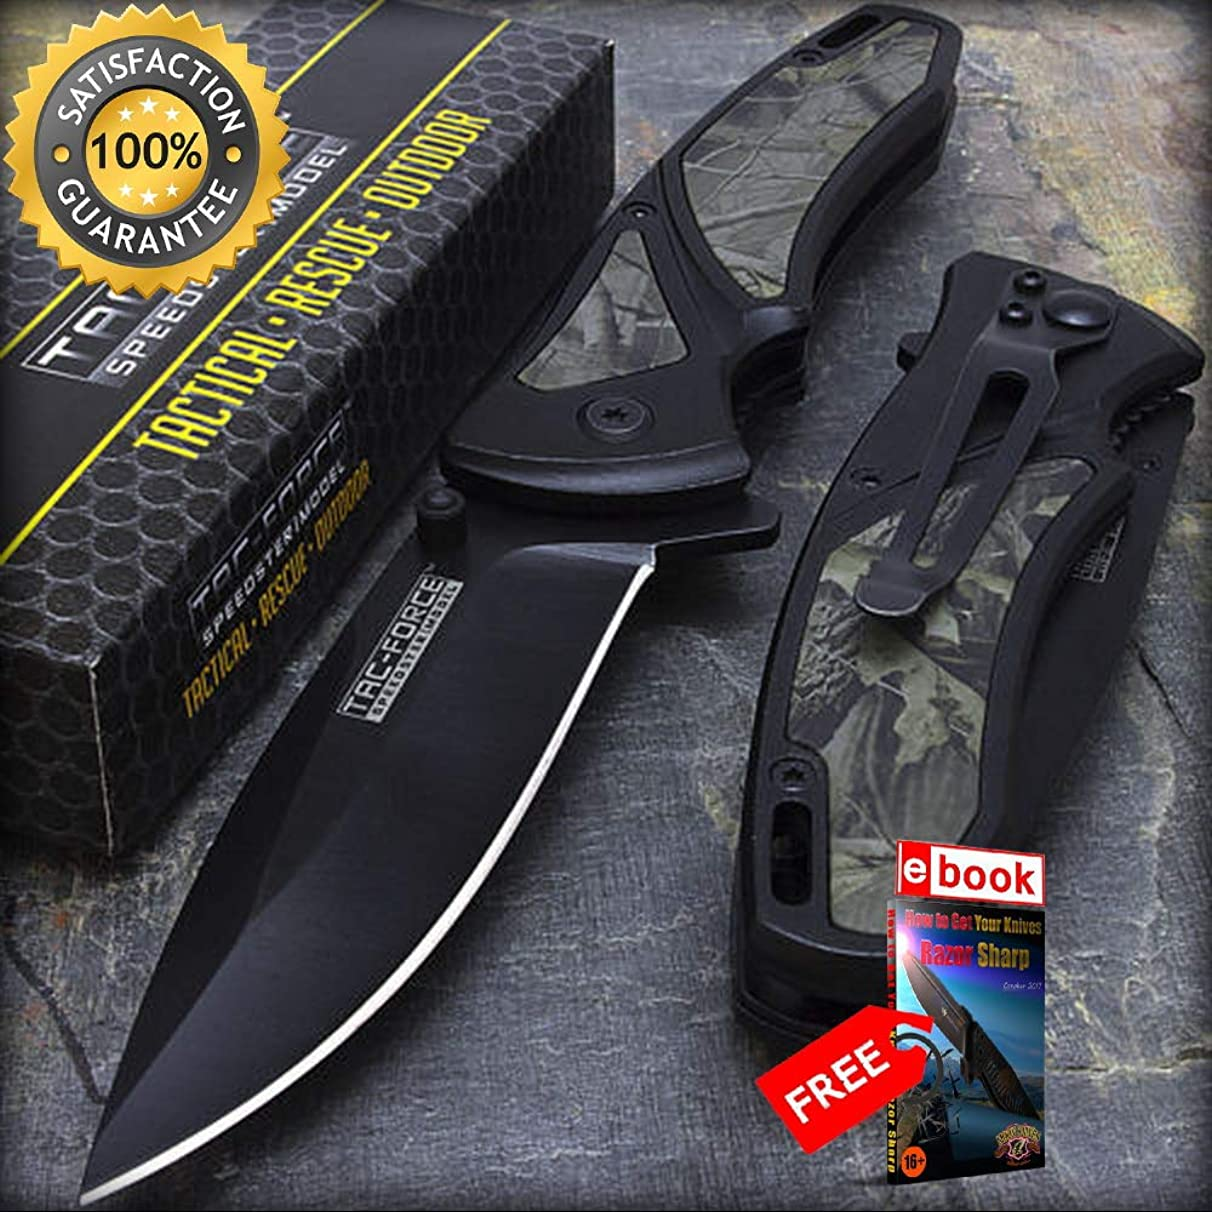 8'' TAC FORCE EDC WOODLAND CAMO INLAY SPRING ASSISTED TACTICAL POCKET KNIFE Razor Sharp Blade Combat Tactical Knife + eBOOK by Moon Knives